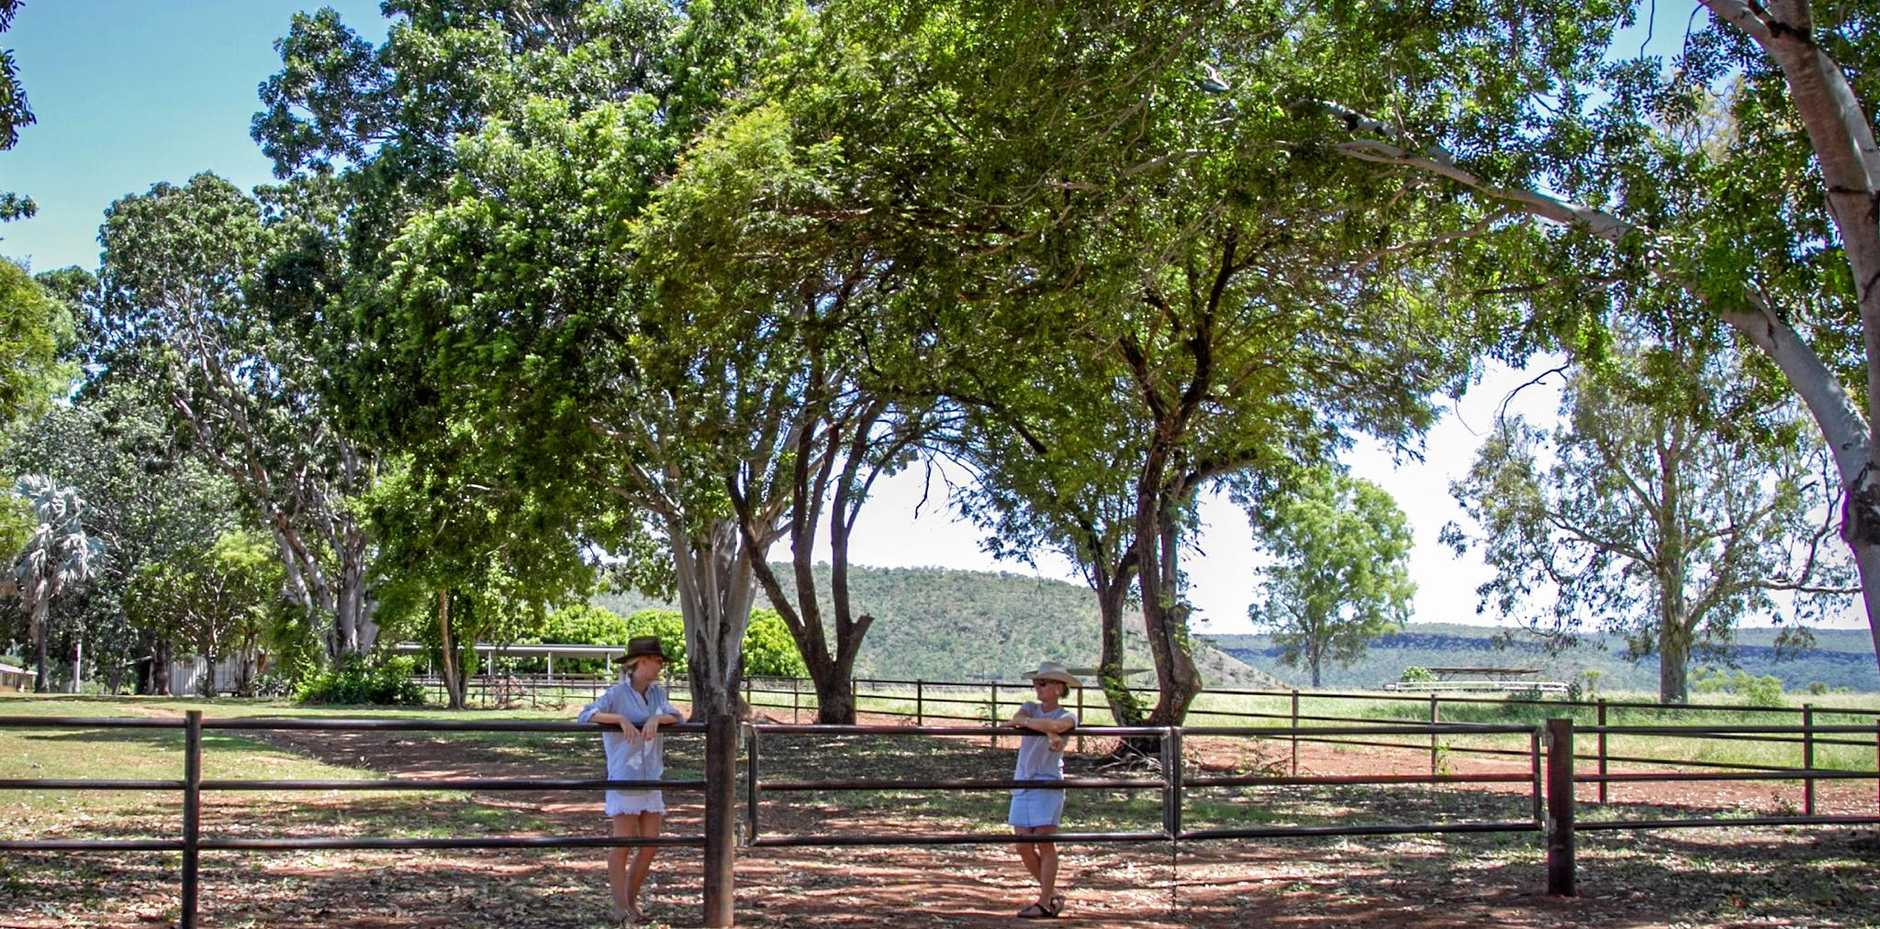 Top End pastoralist Belinda Rasheed along with her sister, Sophie, launched Longrass Style from Legune Station, a property situated on the Northern Territory - Western Australia border.